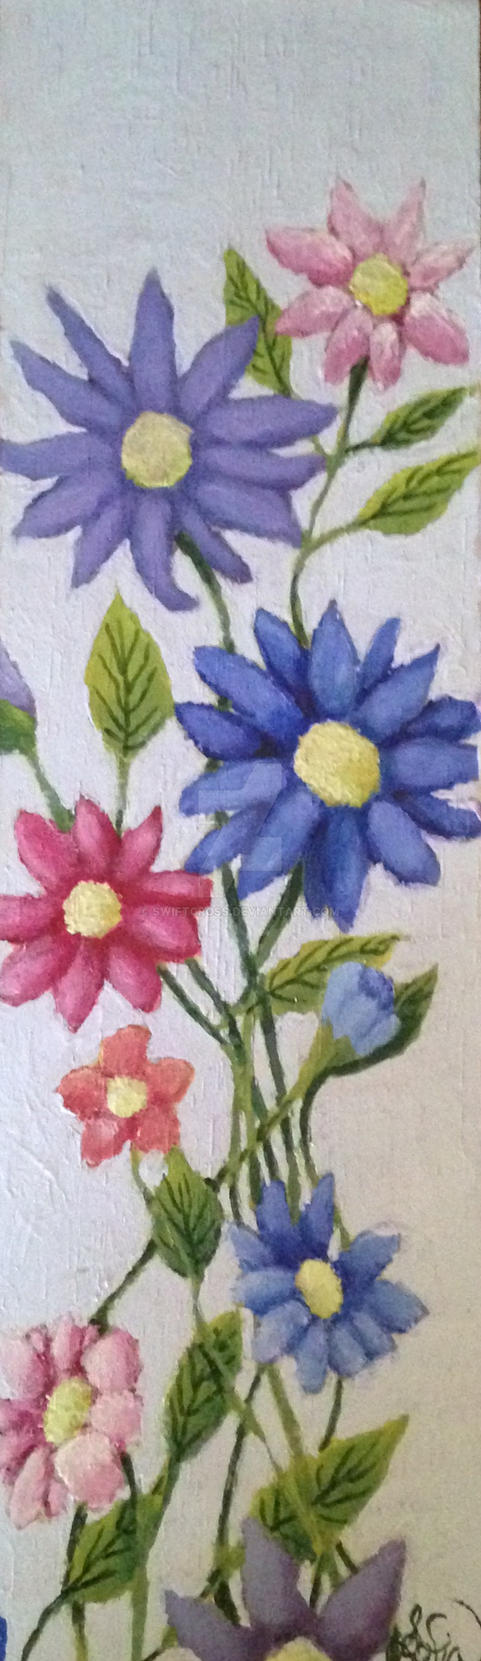 Flowers painting by swiftcross